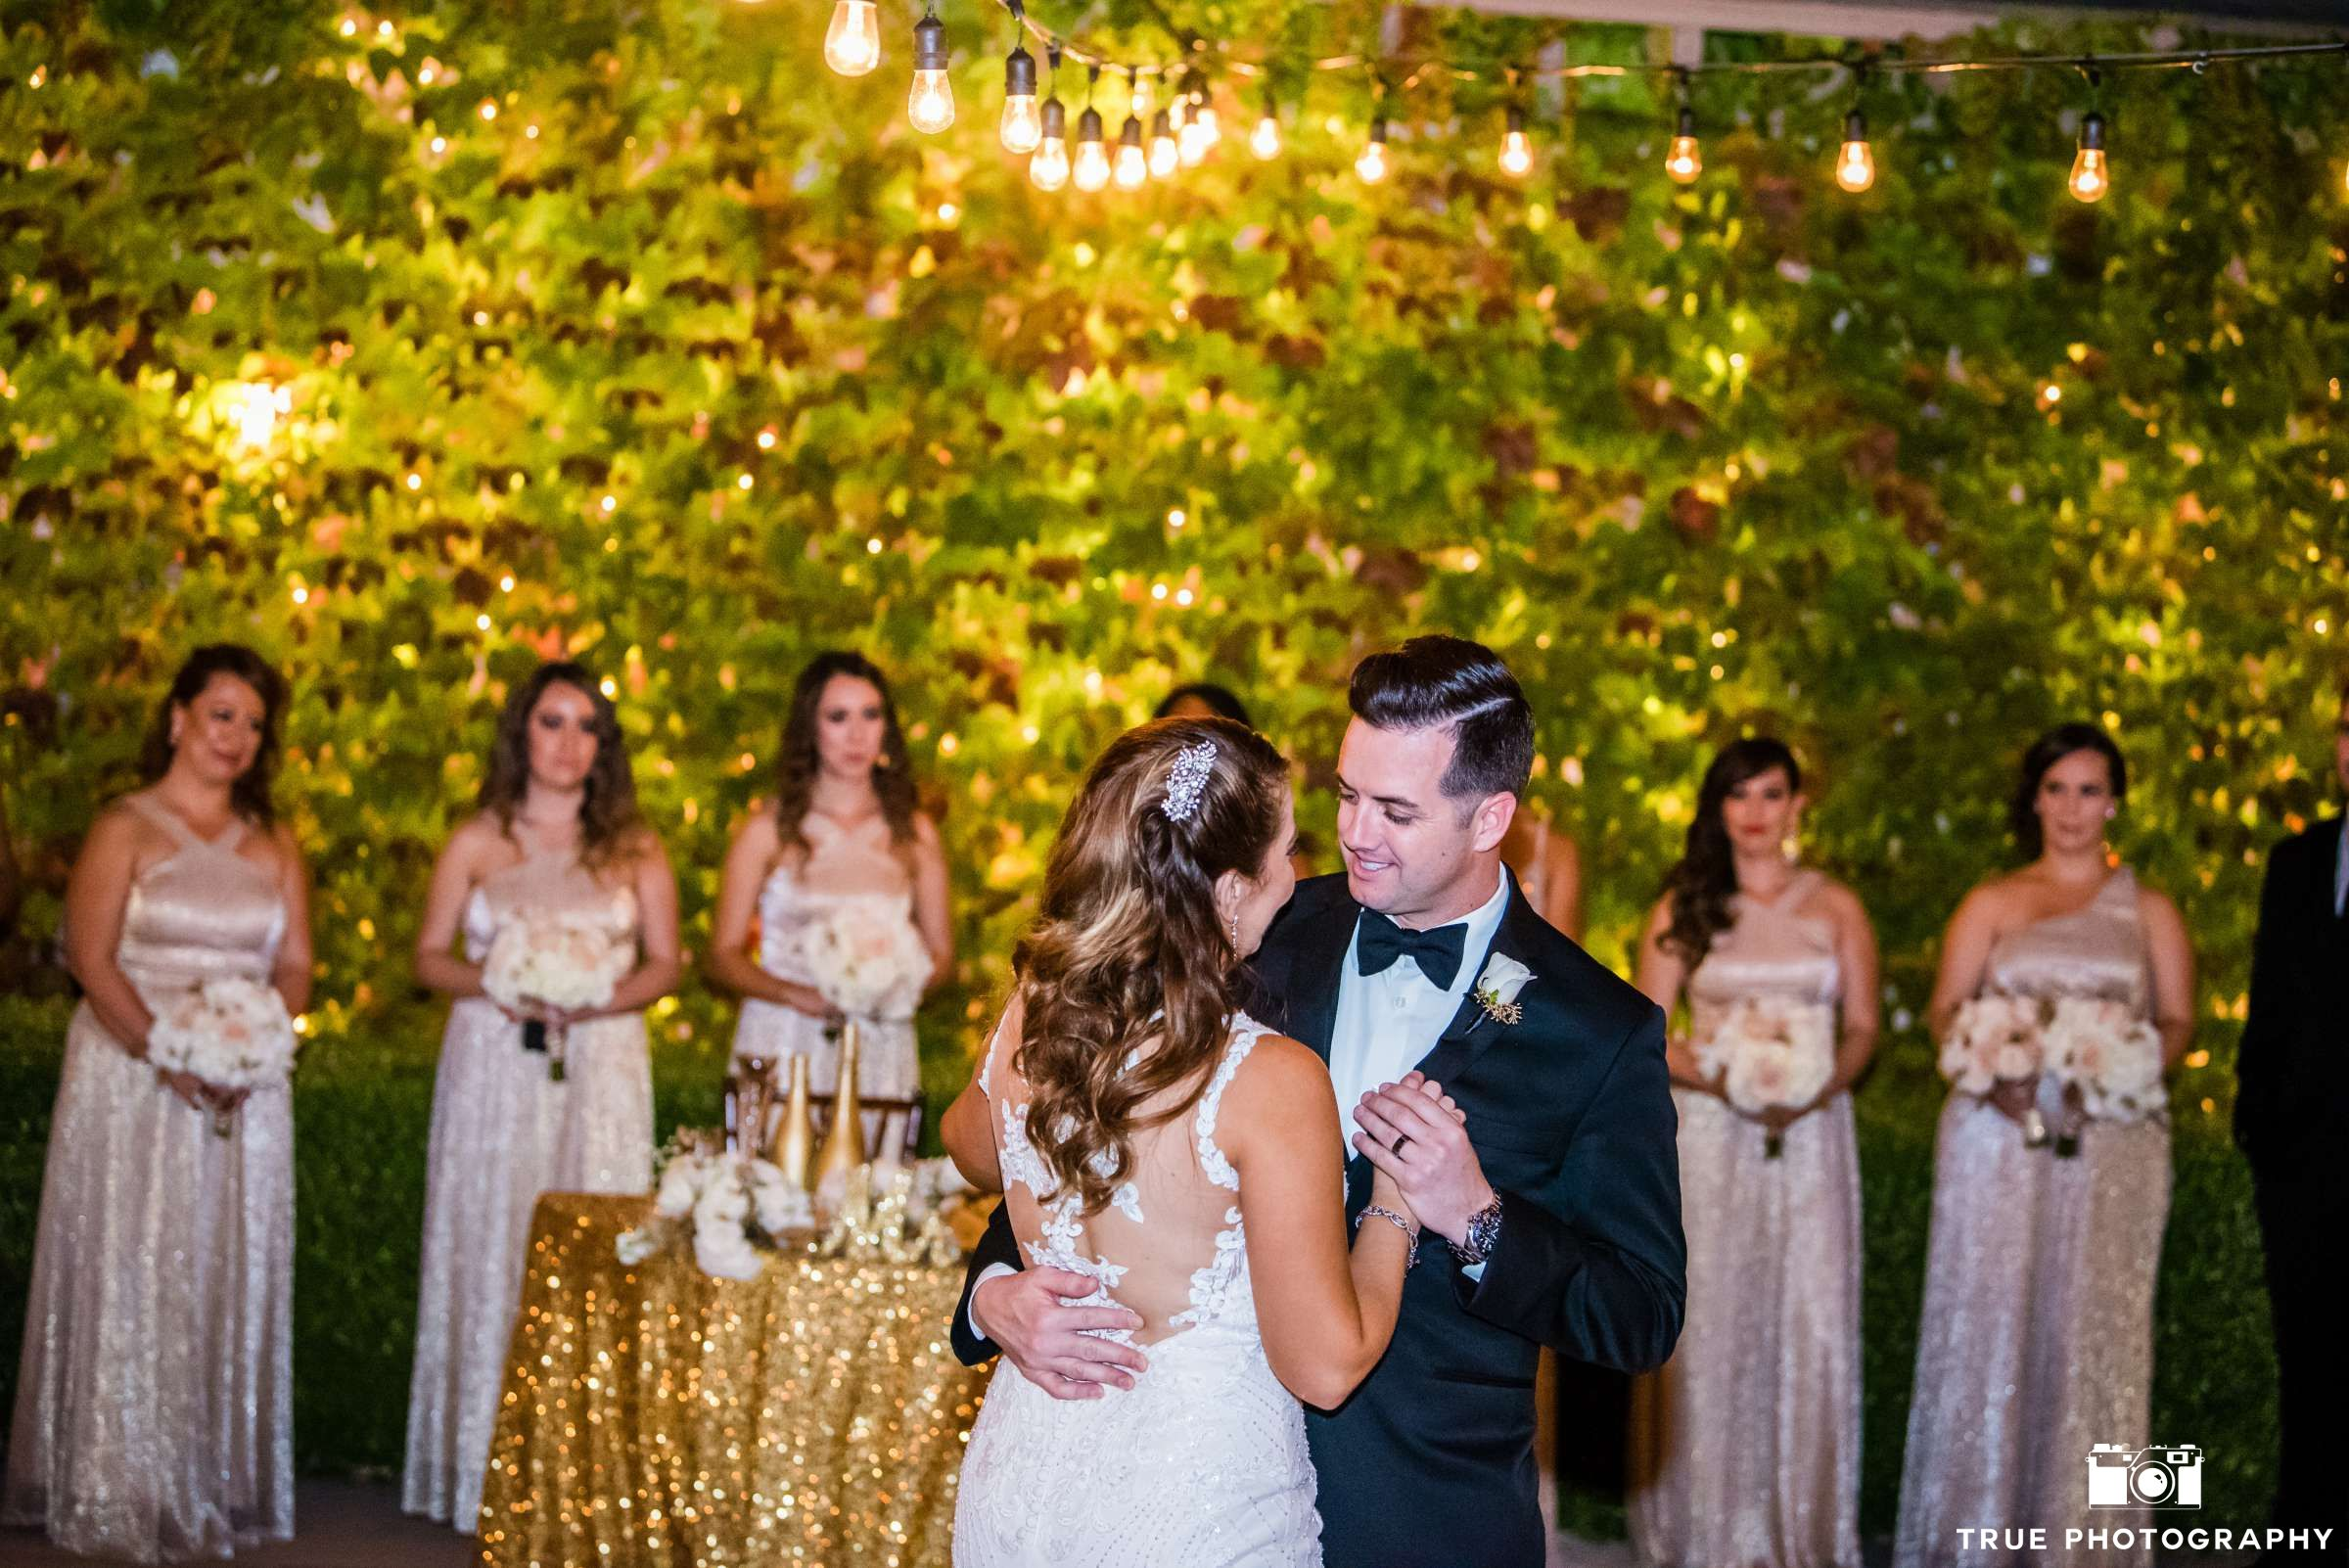 A Little Extra Sparkle For The First Dance 3 San Diego Wedding Venues Outdoor Wedding Venues Wedding Venues